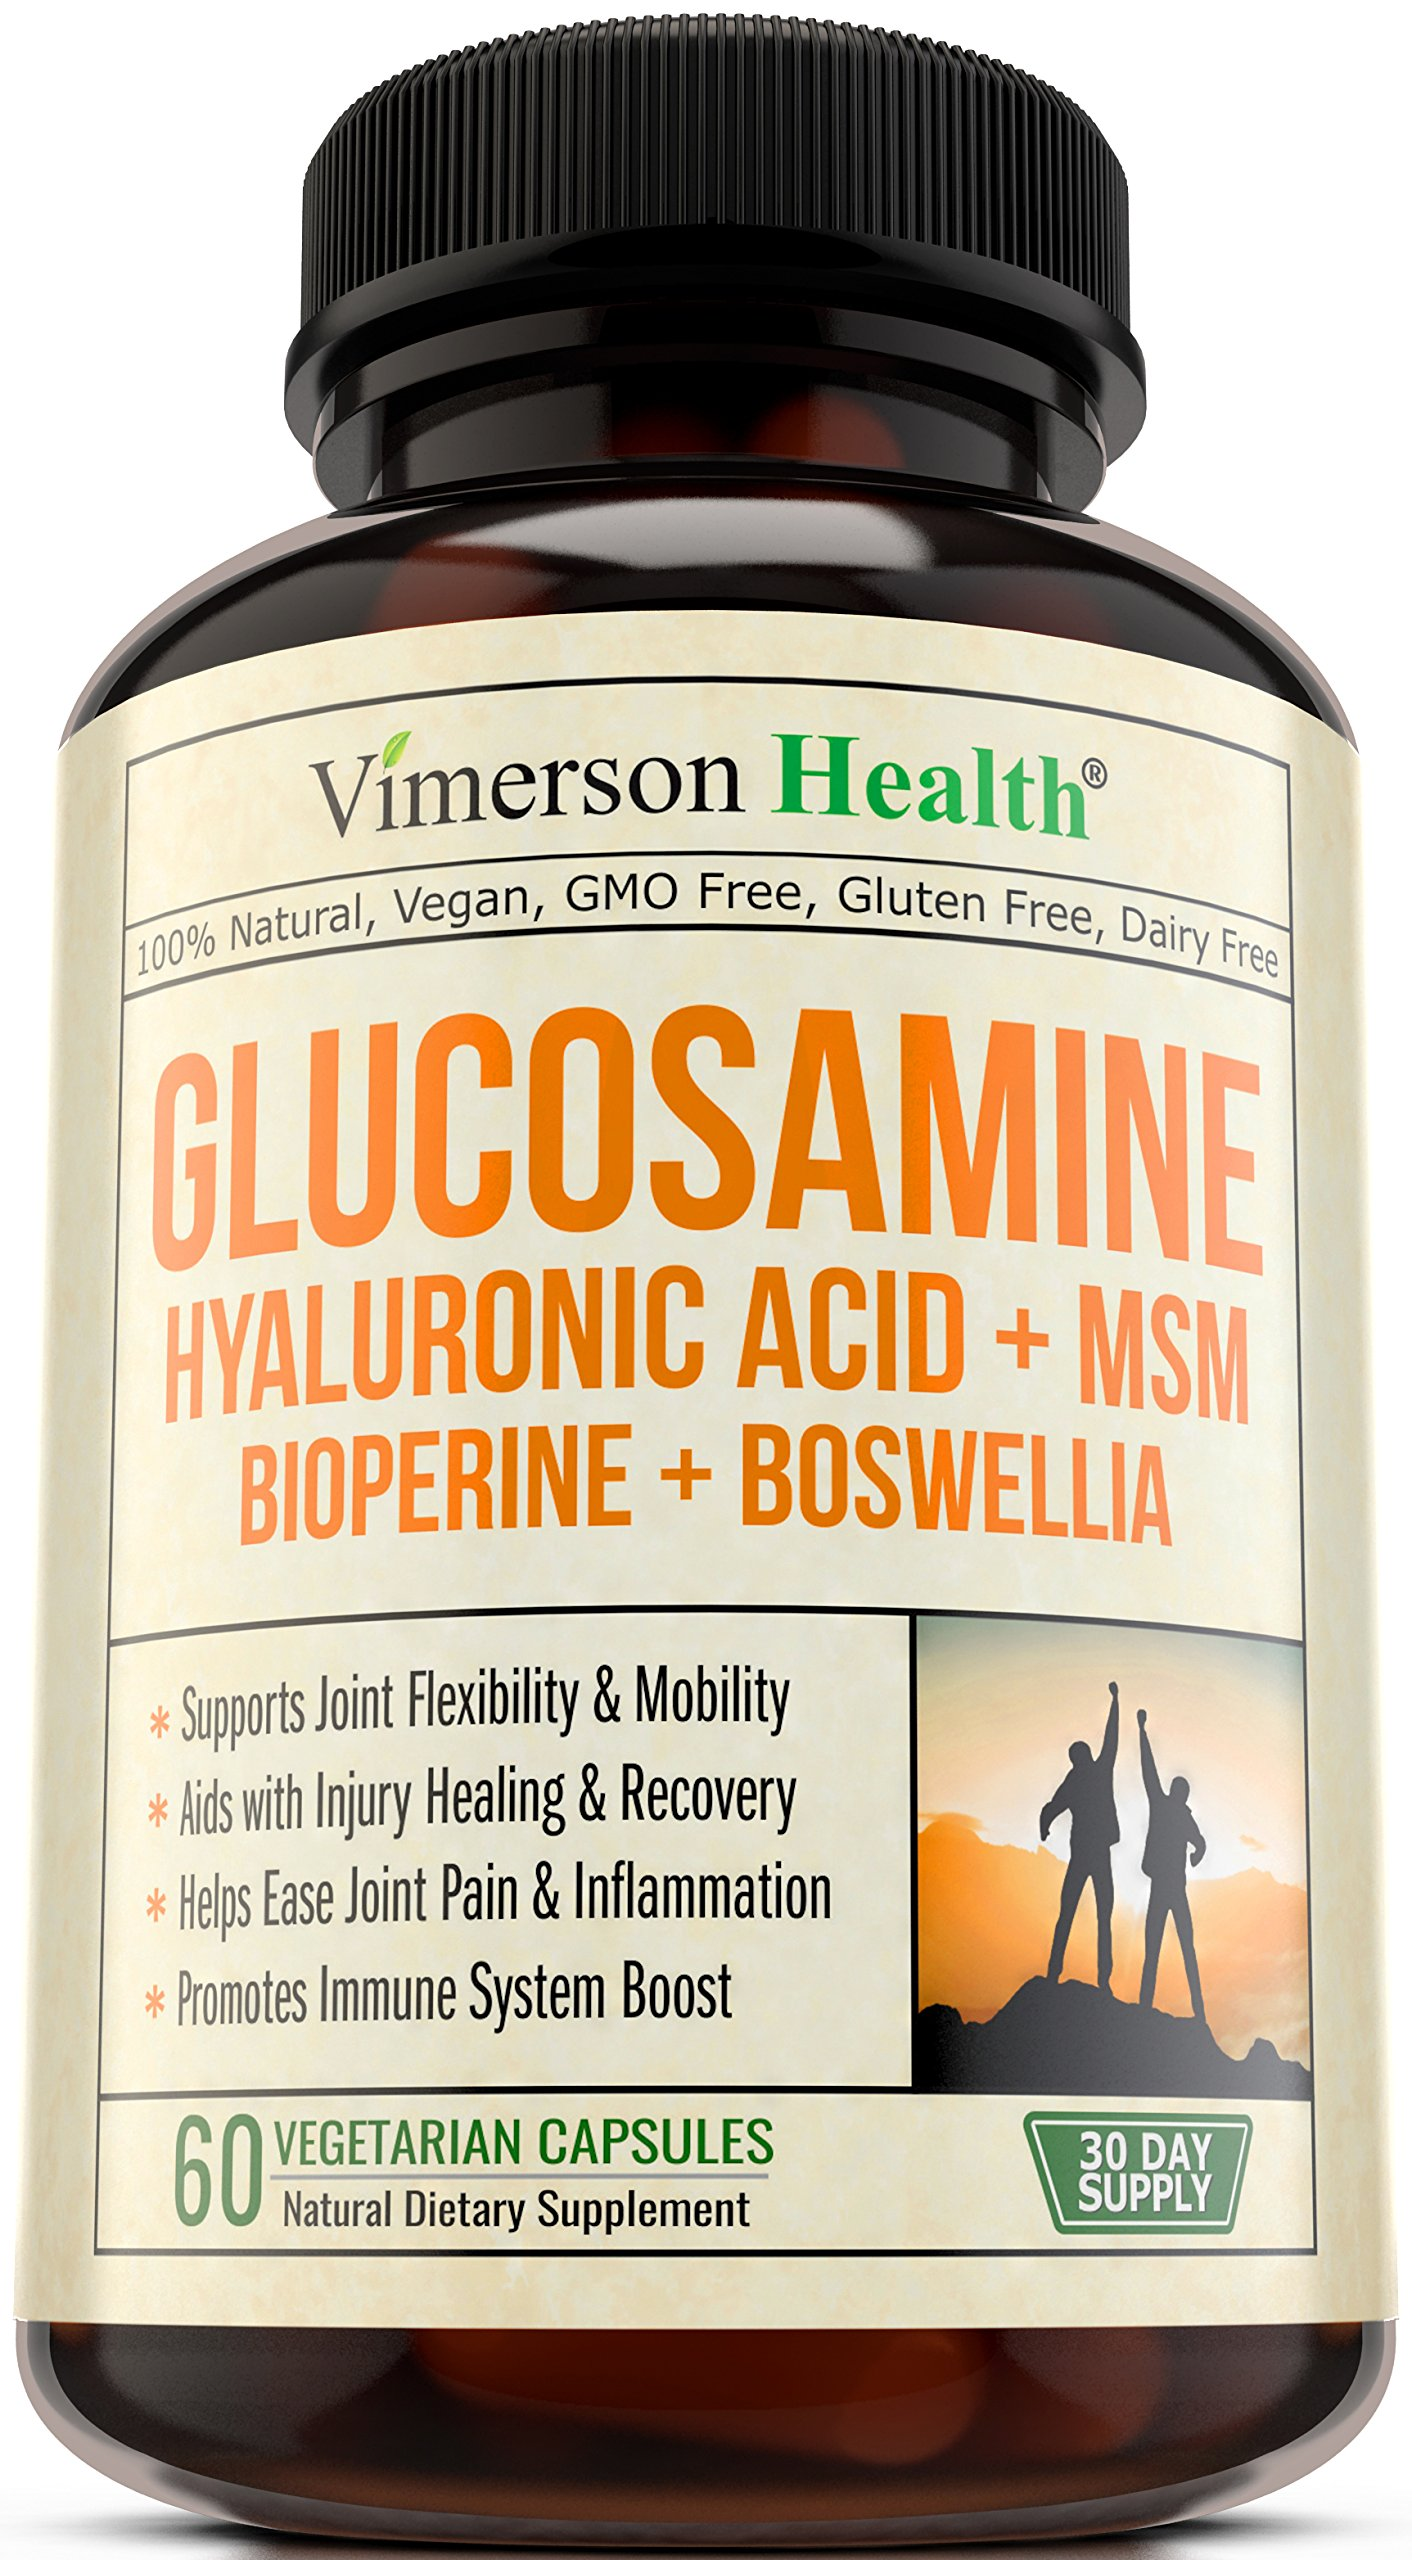 Glucosamine Sulfate with Hyaluronic Acid - Bioperine, MSM, Boswellia. Vegan Joint Pain Relief Supplement. Natural Anti-Inflammatory & Antioxidant Pills for Back, Knees & Hands. Immune System Booster.